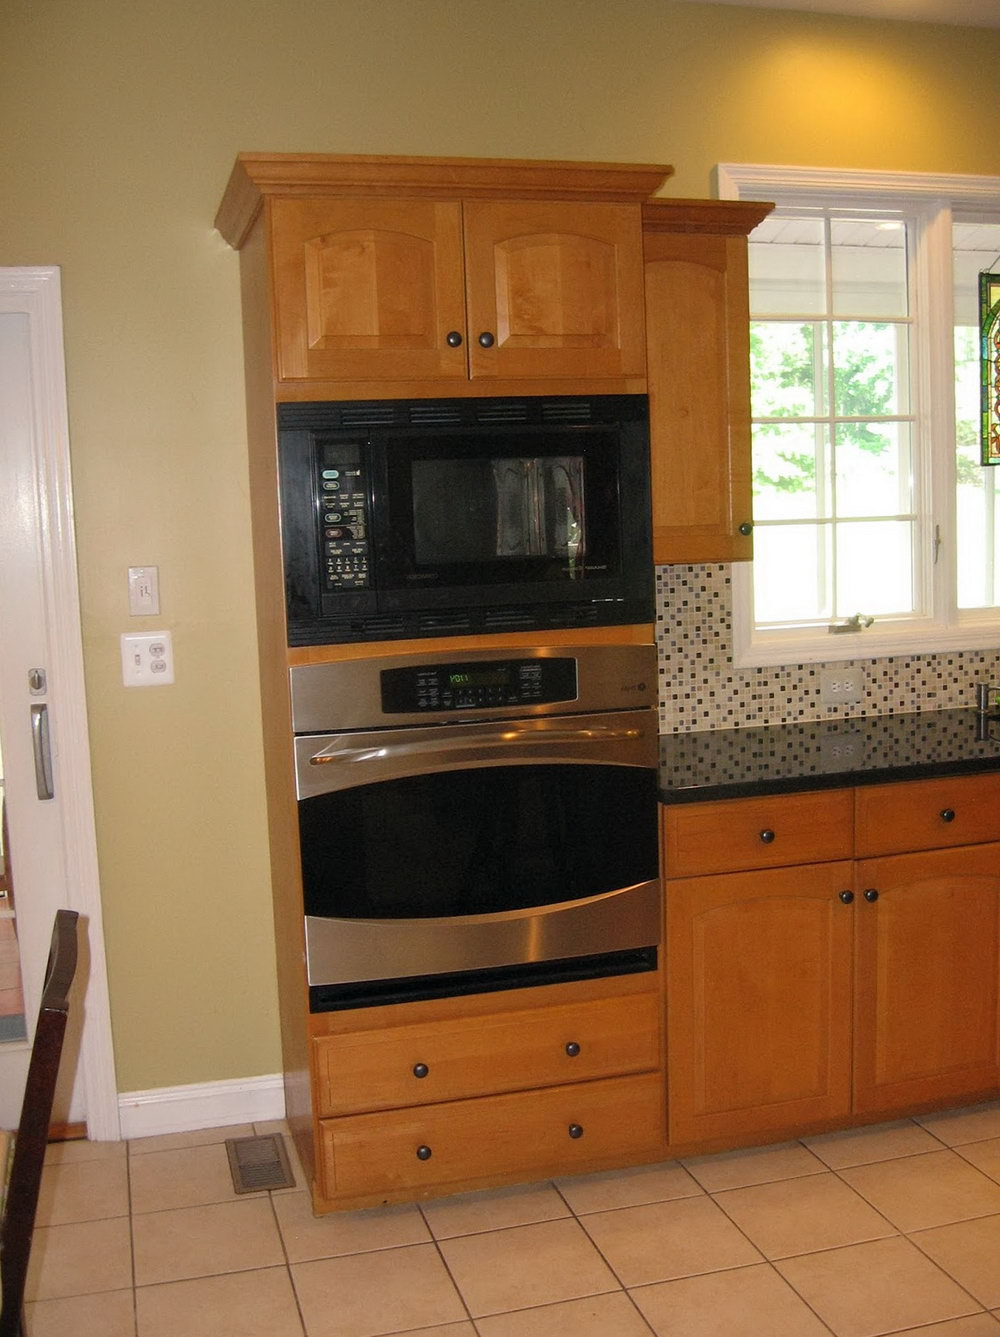 Kitchen Wall Cabinet For Microwave